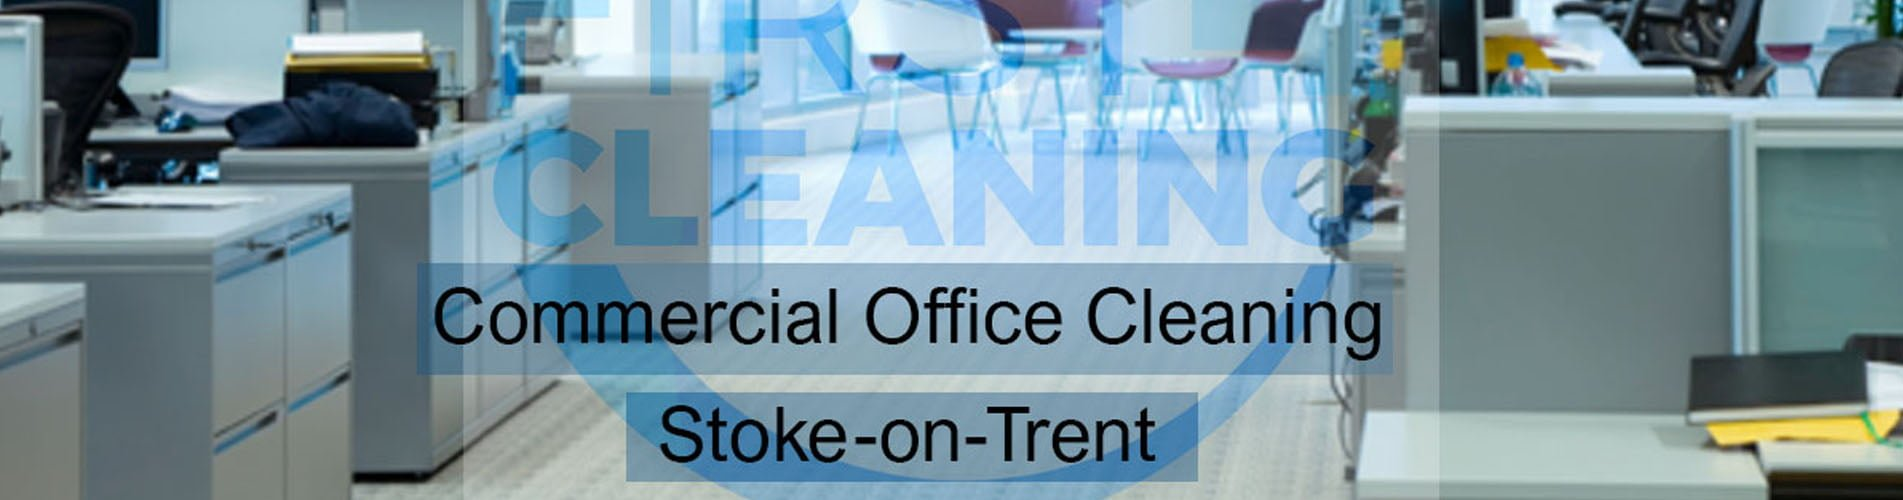 Commercial Office Cleaning Stoke-on-Trent